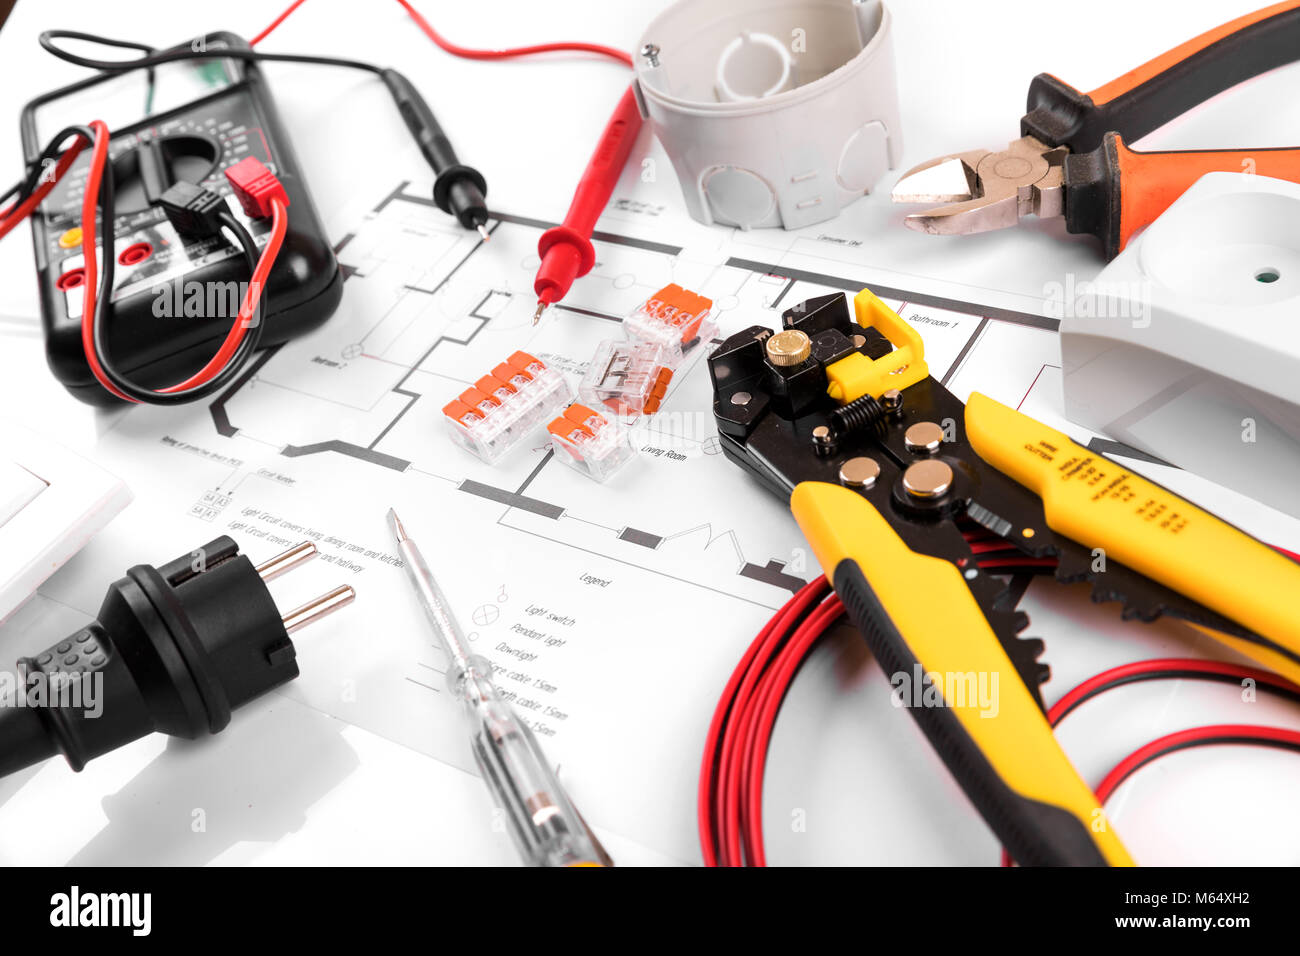 wiring tools stock photos wiring tools stock images alamy rh alamy com Barb Wire Fence Tools Cable Crimper Tool